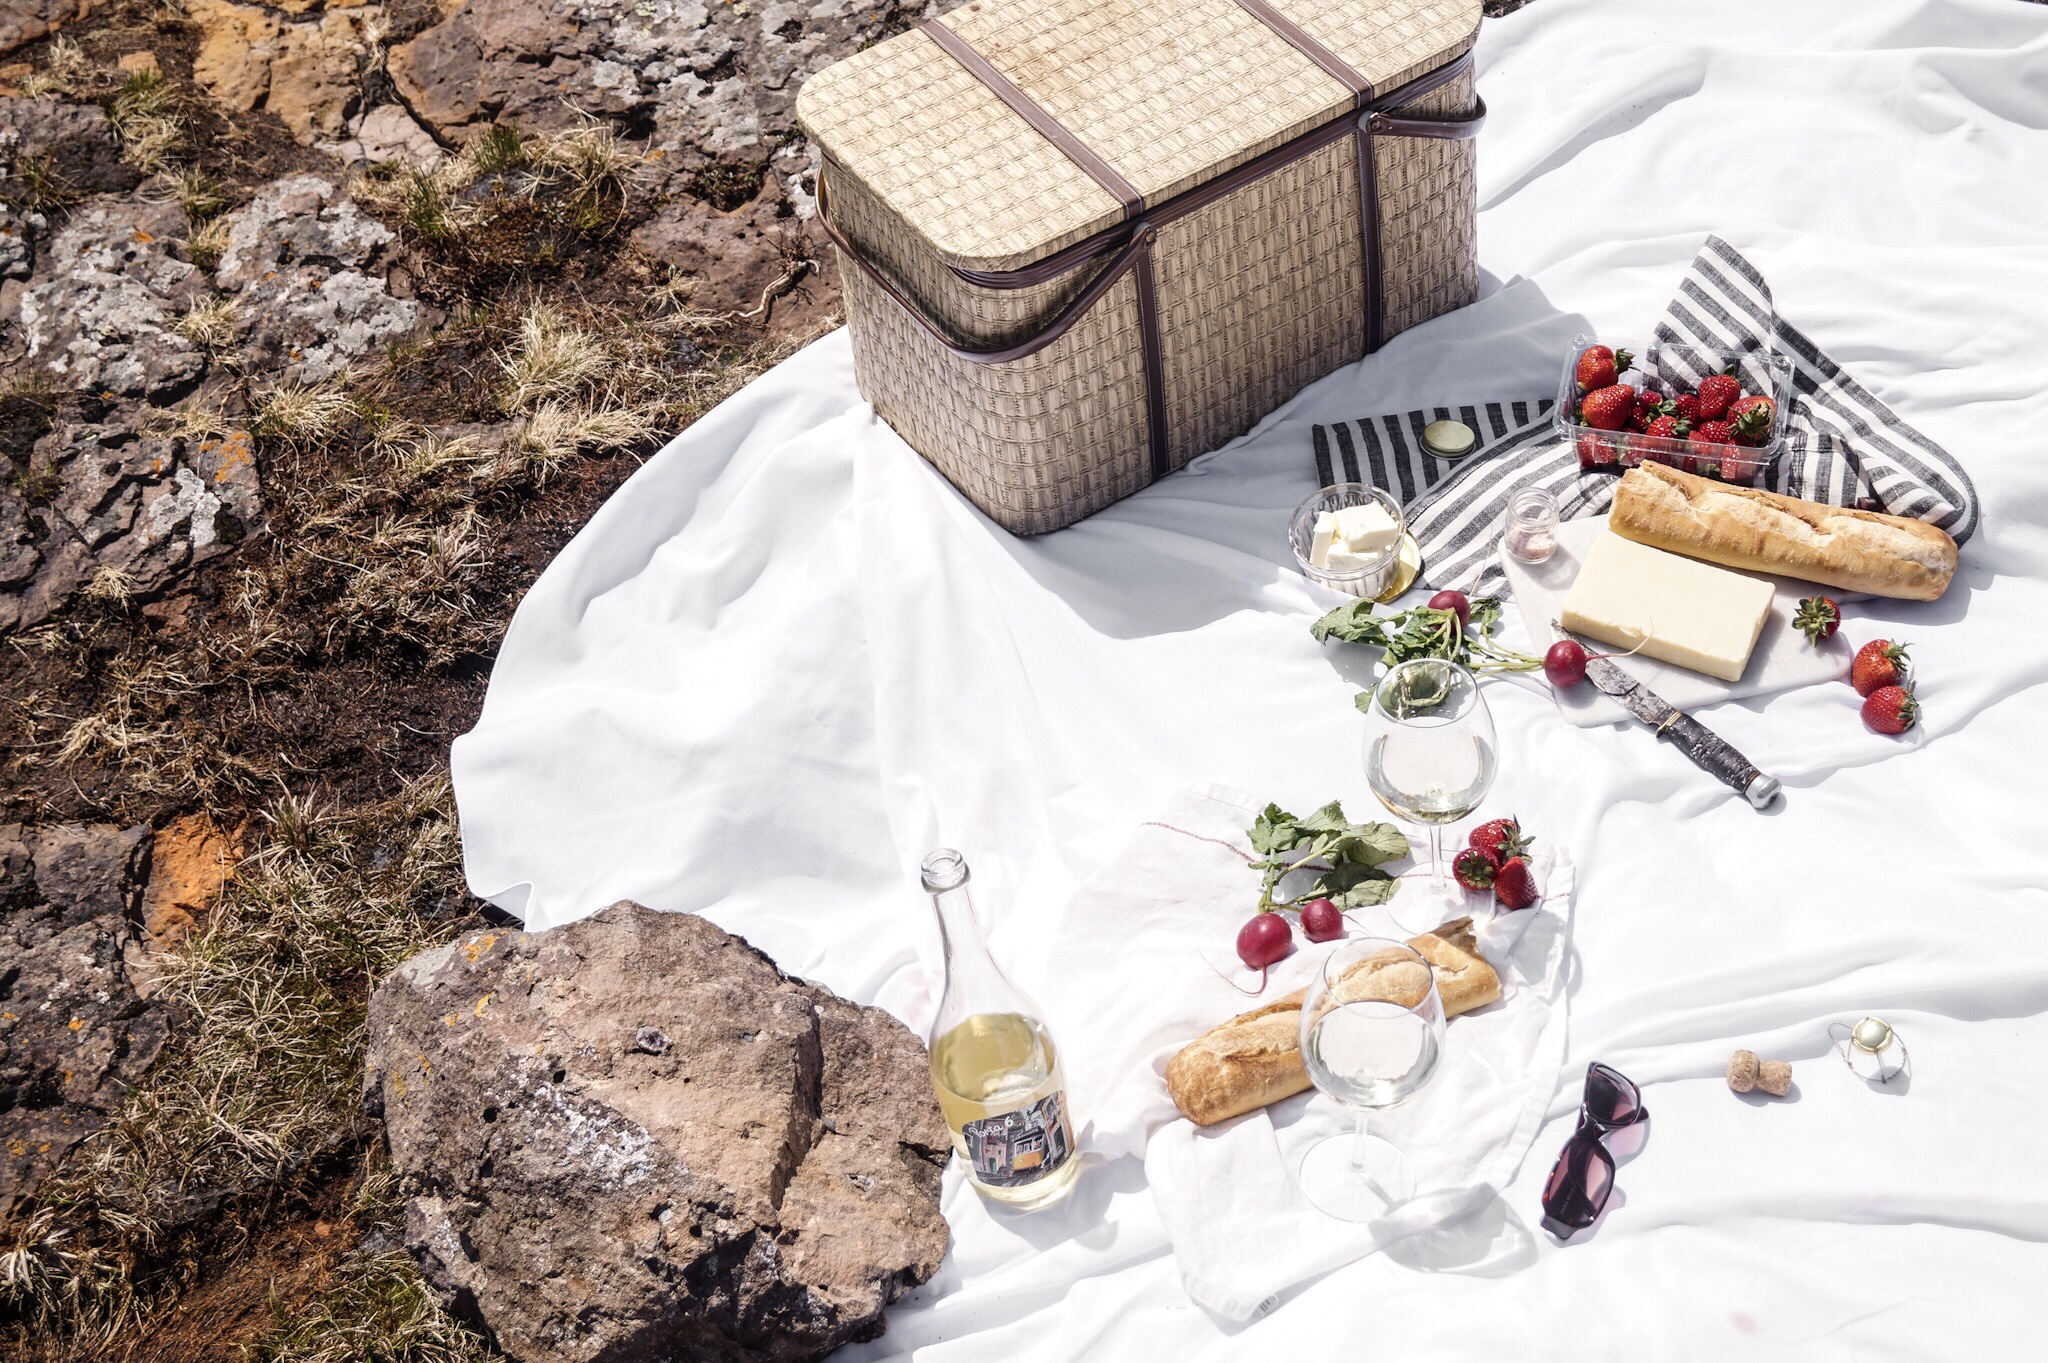 Romantic picnic by the shore